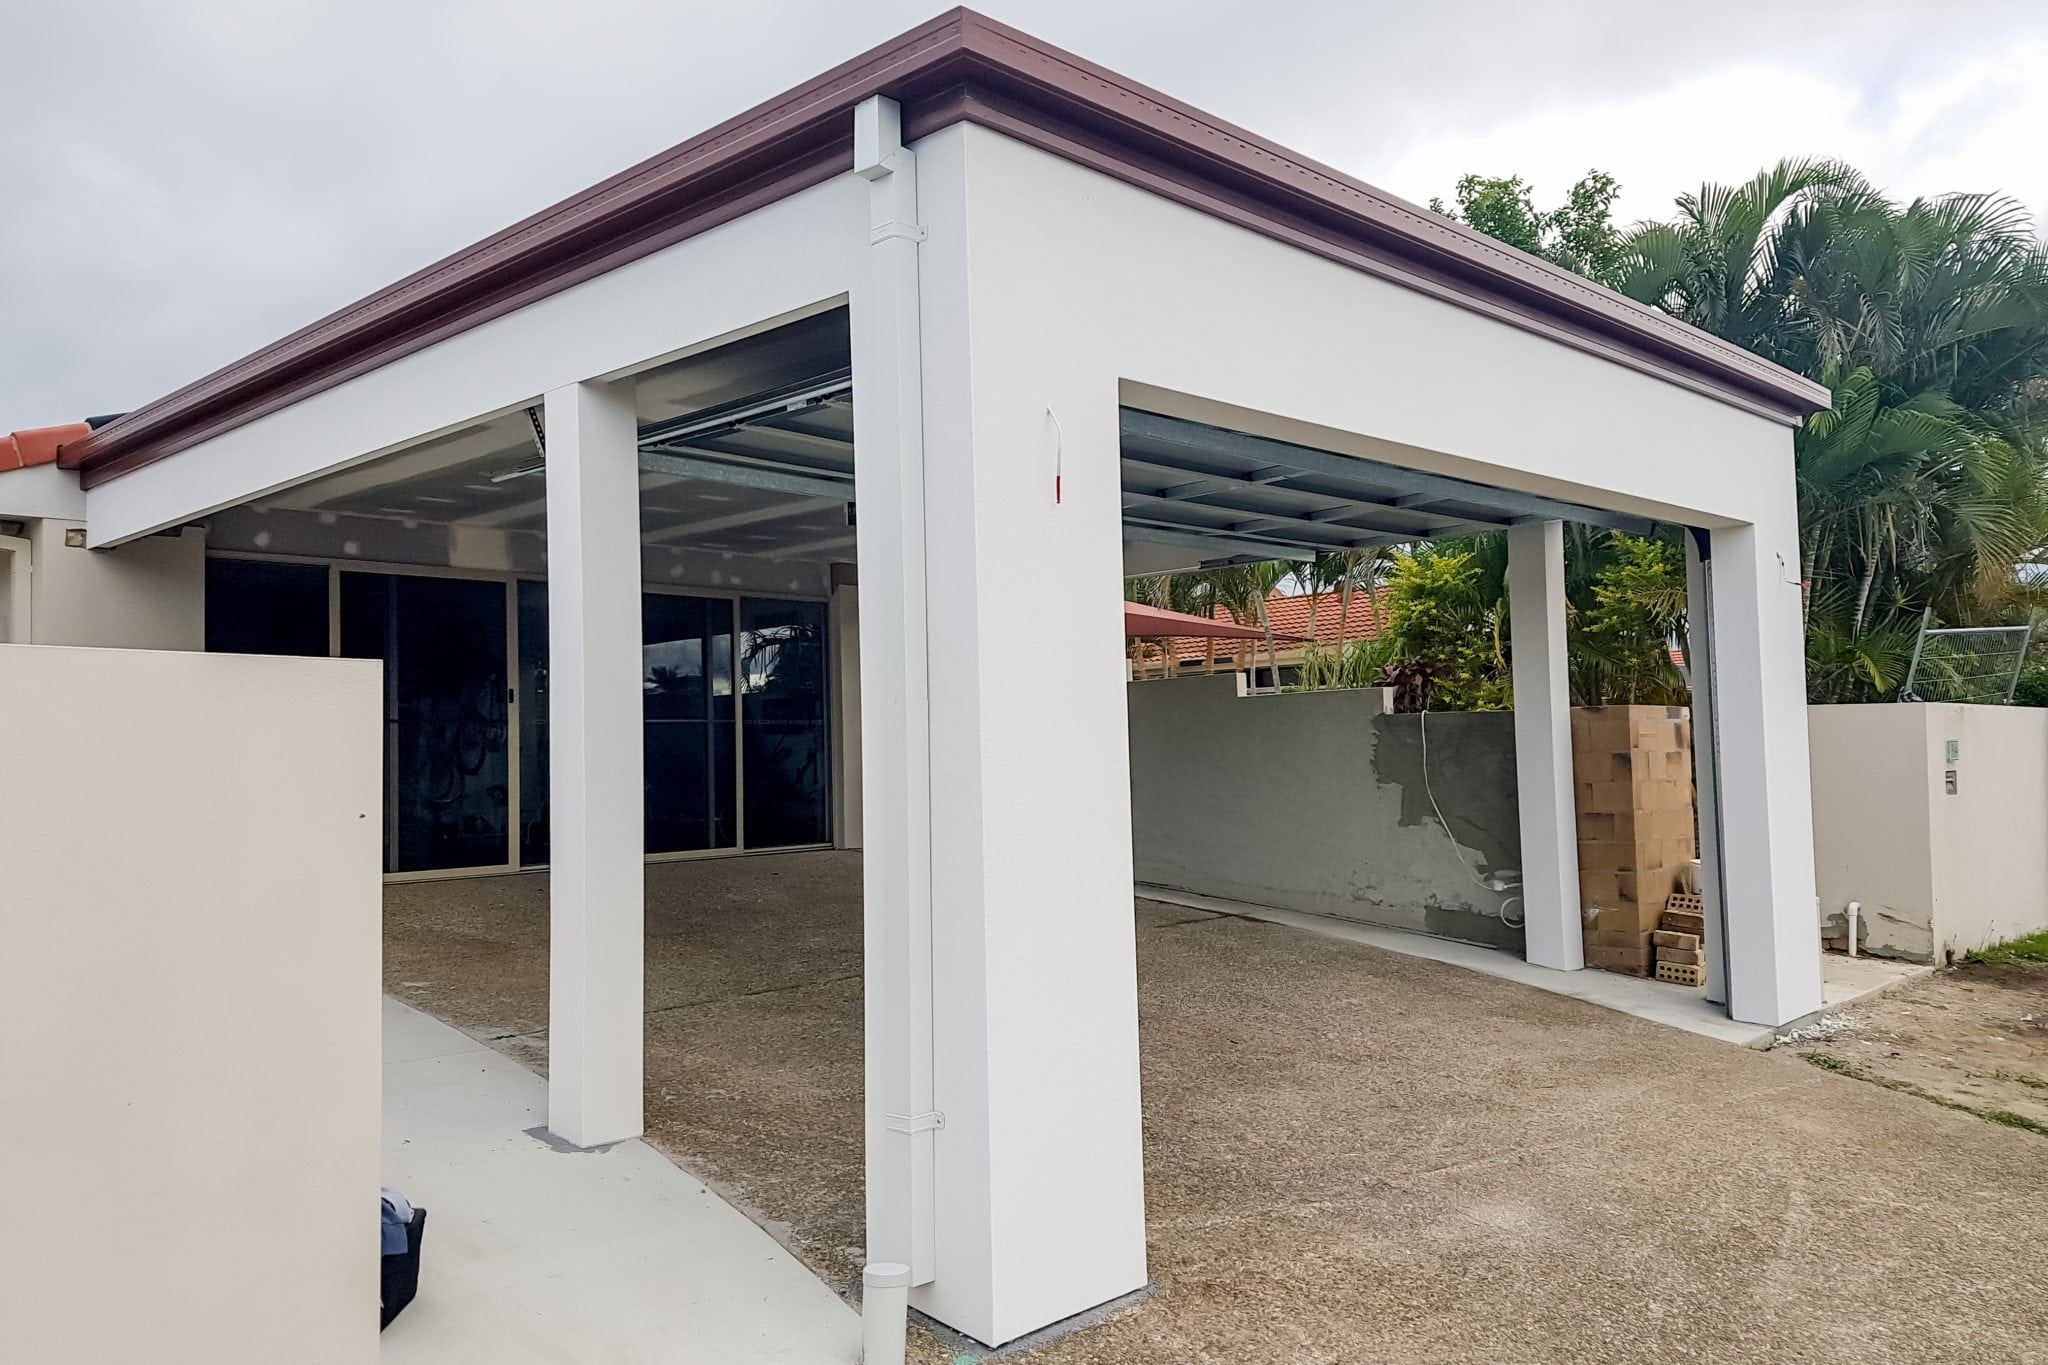 Carport and residential house rendered by trade qualified Gold Coast Precision Rendering